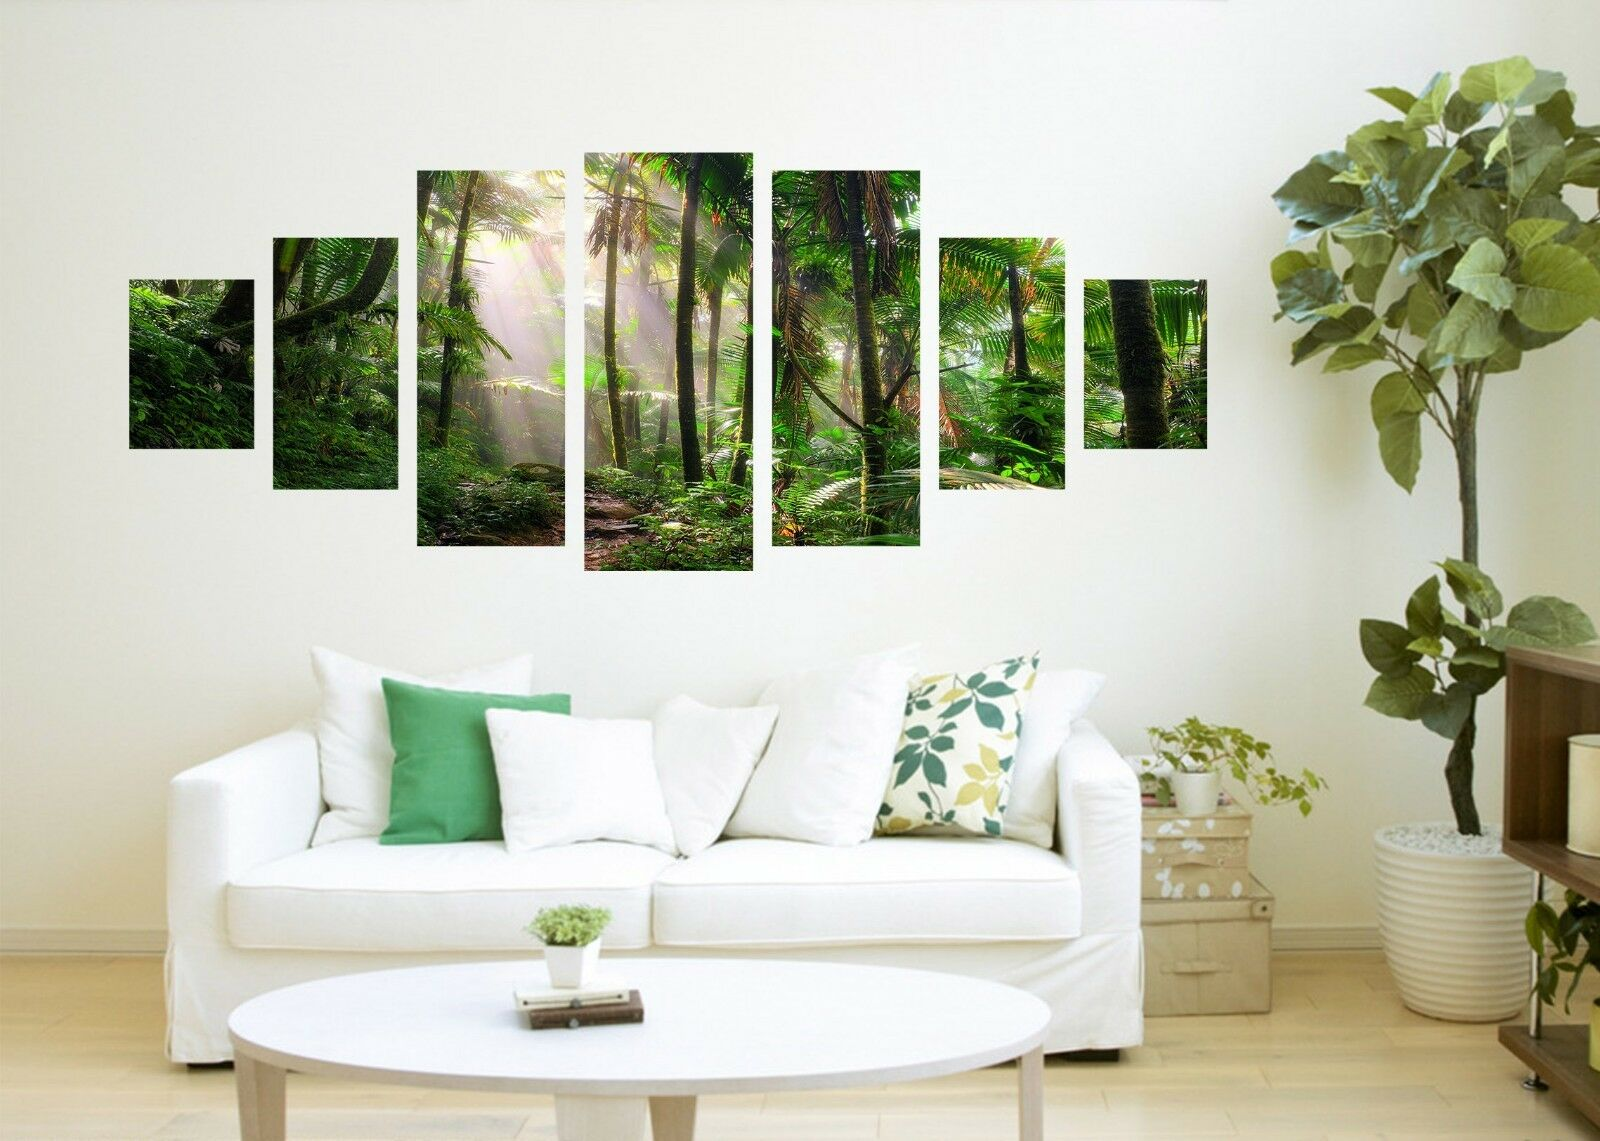 3D Sunny Trees View 84 Unframed Print Wall Paper Decal Wall Deco Indoor AJ Jenny